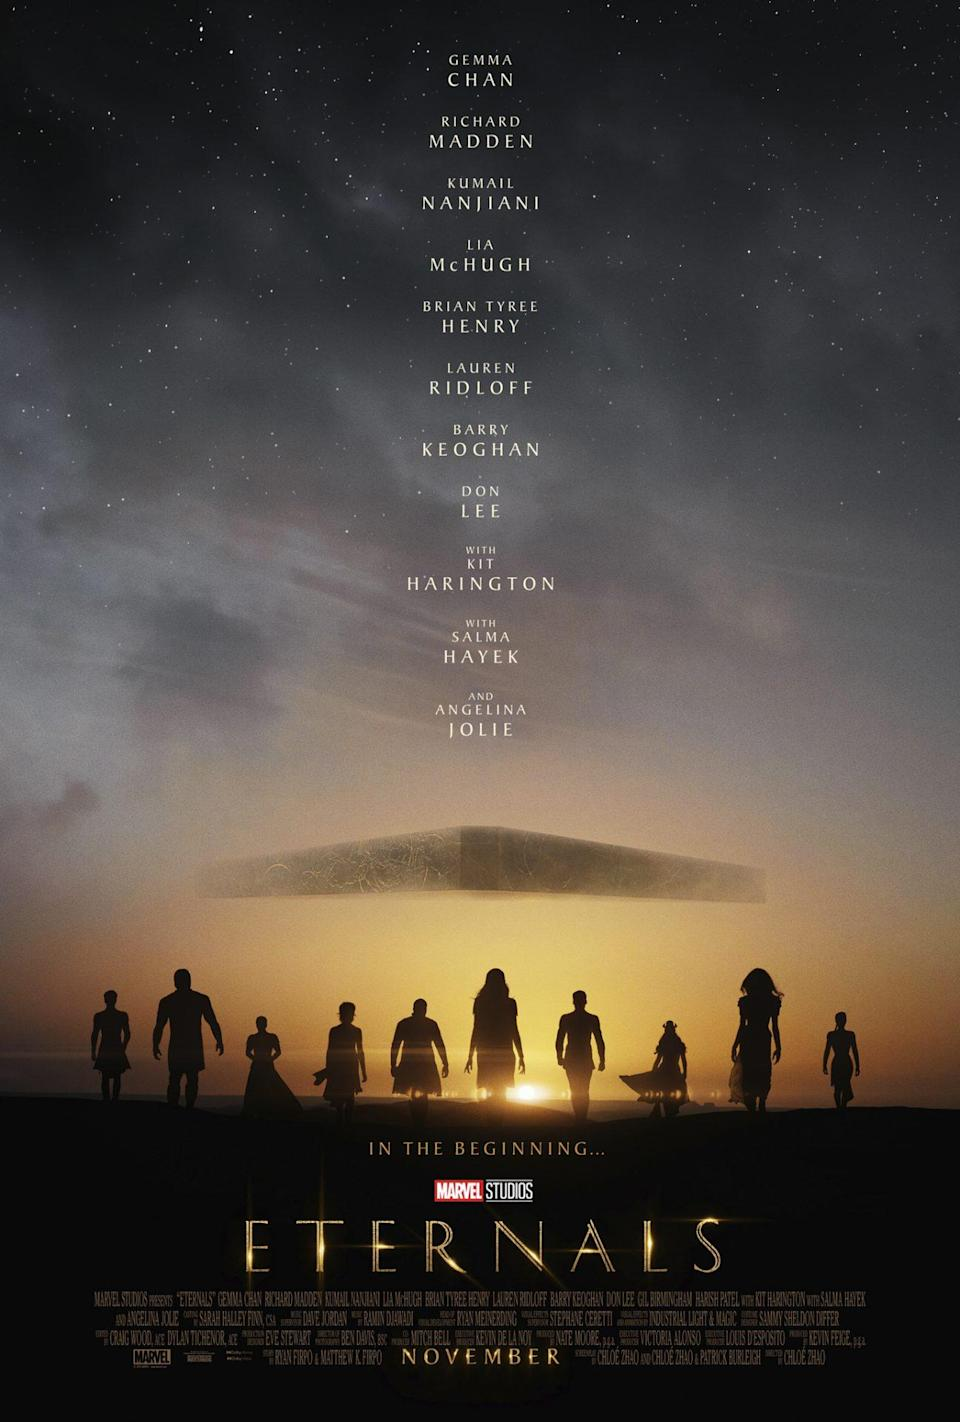 Silhouettes of the Eternals team beneath an alien spaceship in a starry sky.